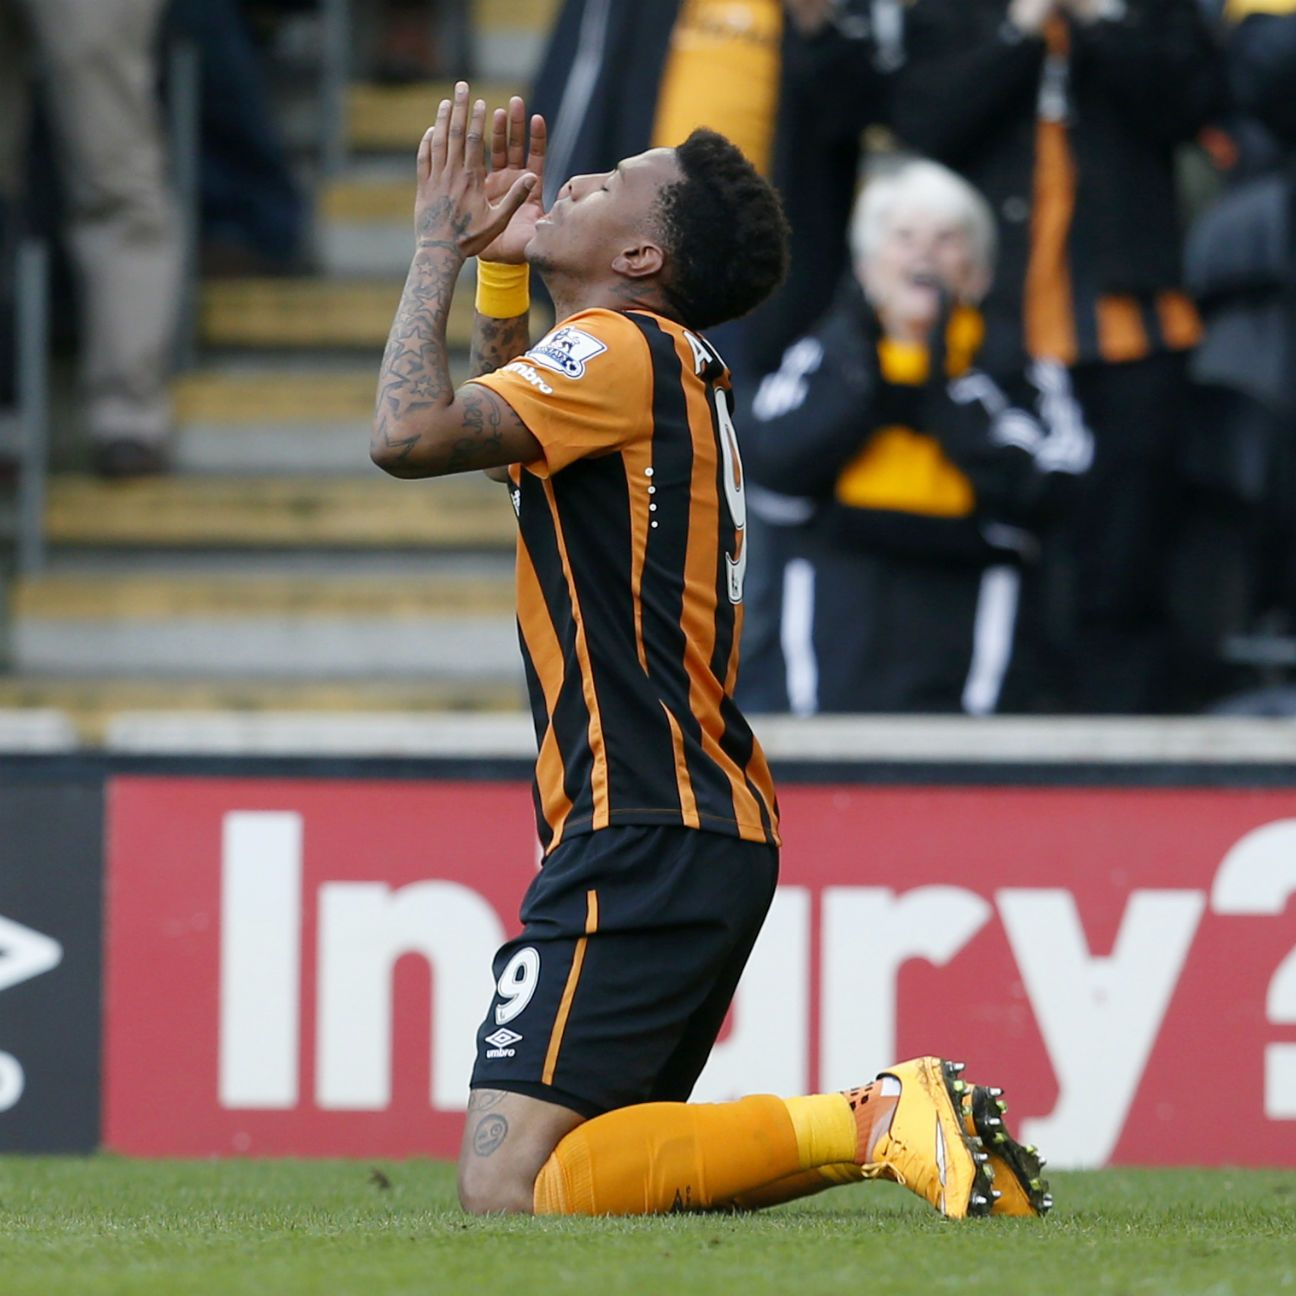 Abel Hernandez and Hull City should be able to build on Sunday's loss to Chelsea.